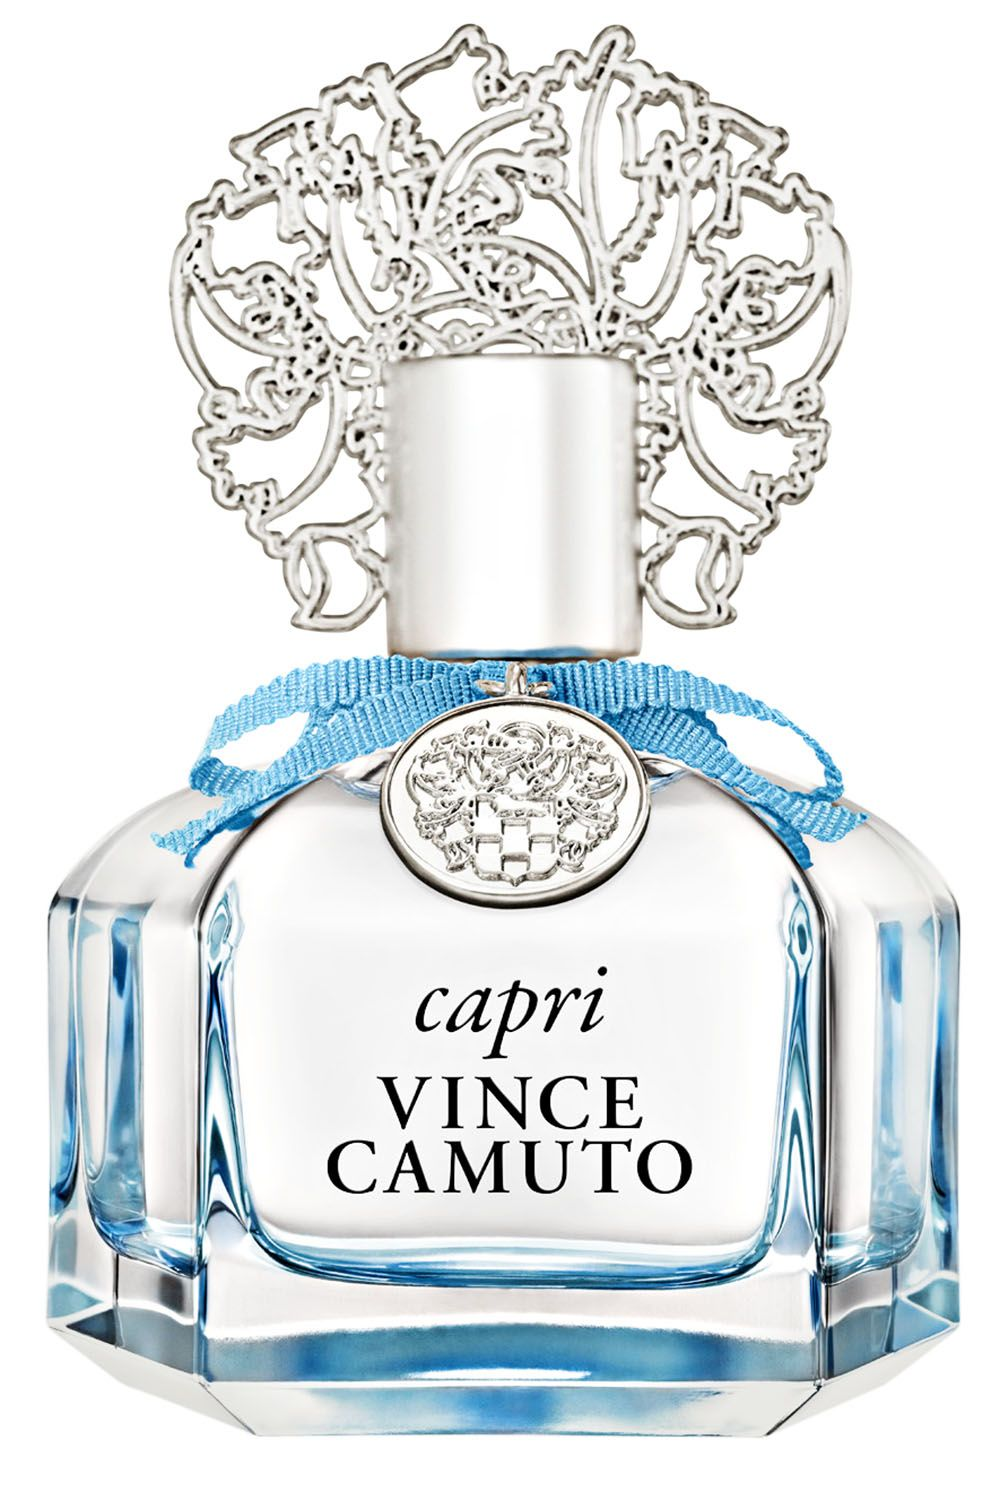 "<p>""Capri Vince Camuto.""</p><p><strong>Vince Camuto </strong>Capri perfume, $82</p>"